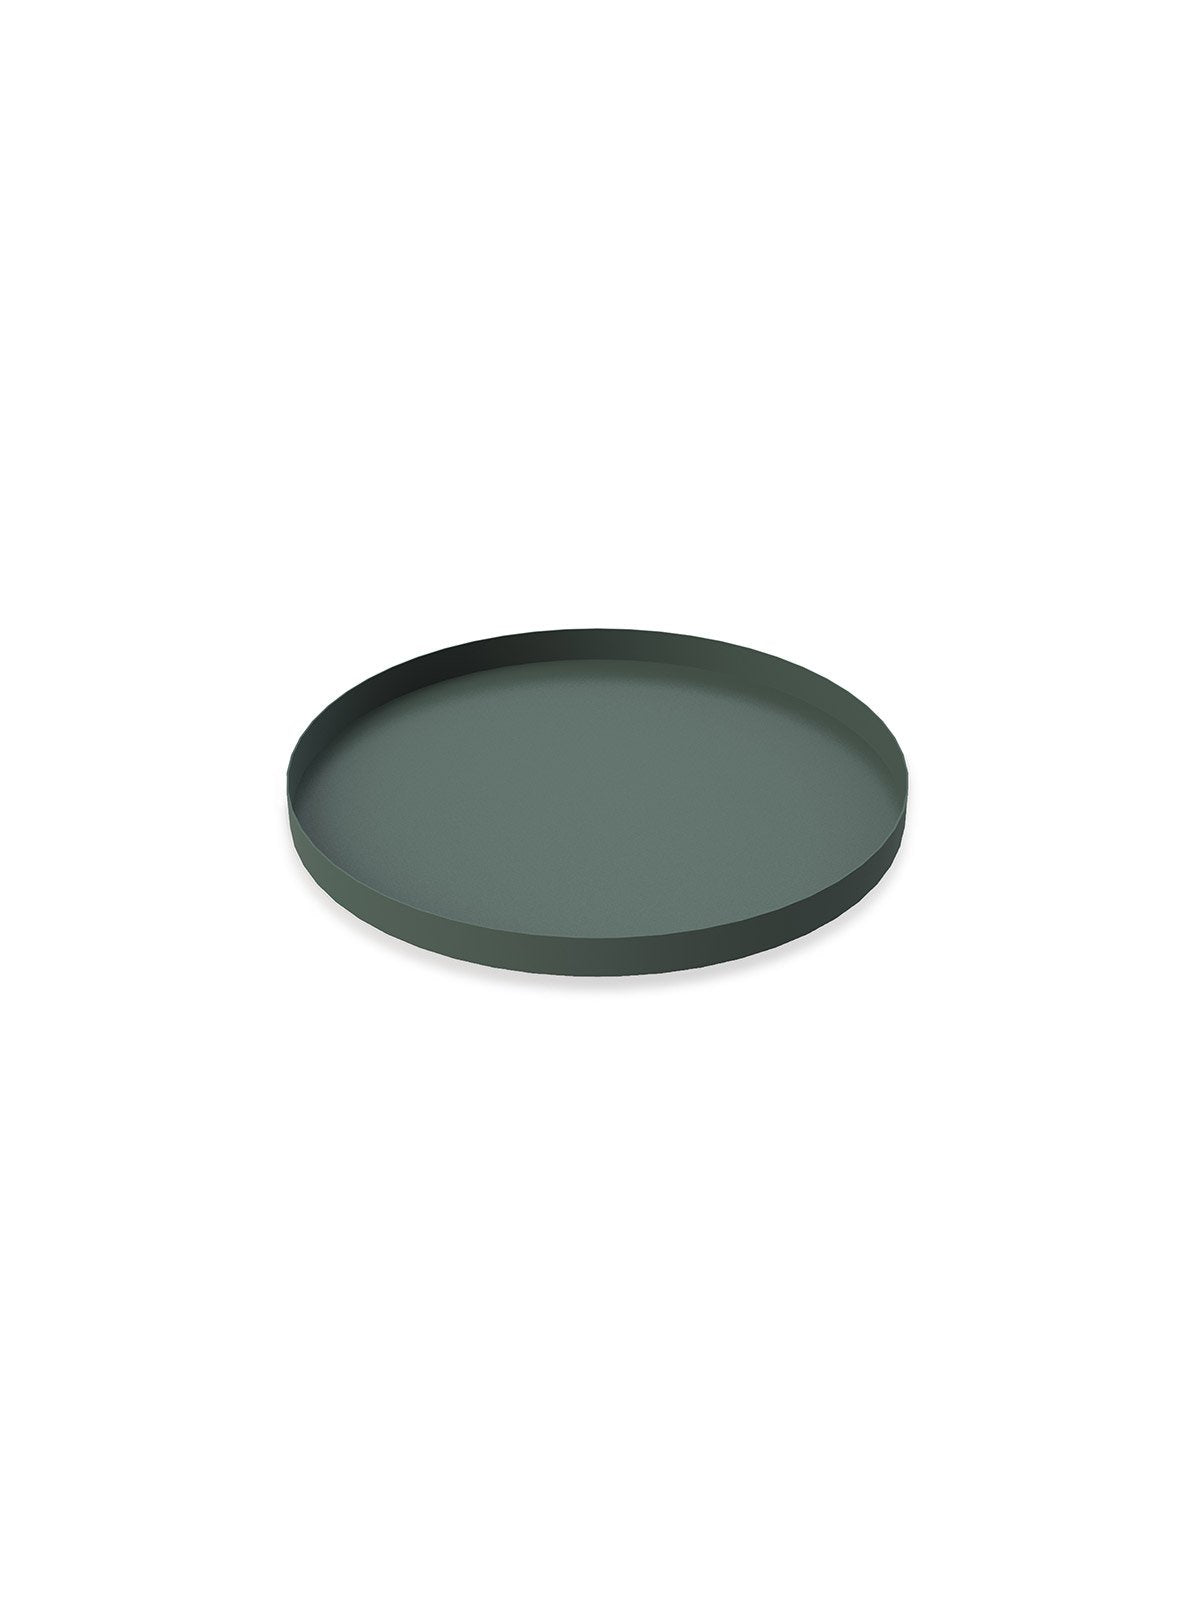 circletray_30cm_darkgreen_product1_miljuu.com_1304-032